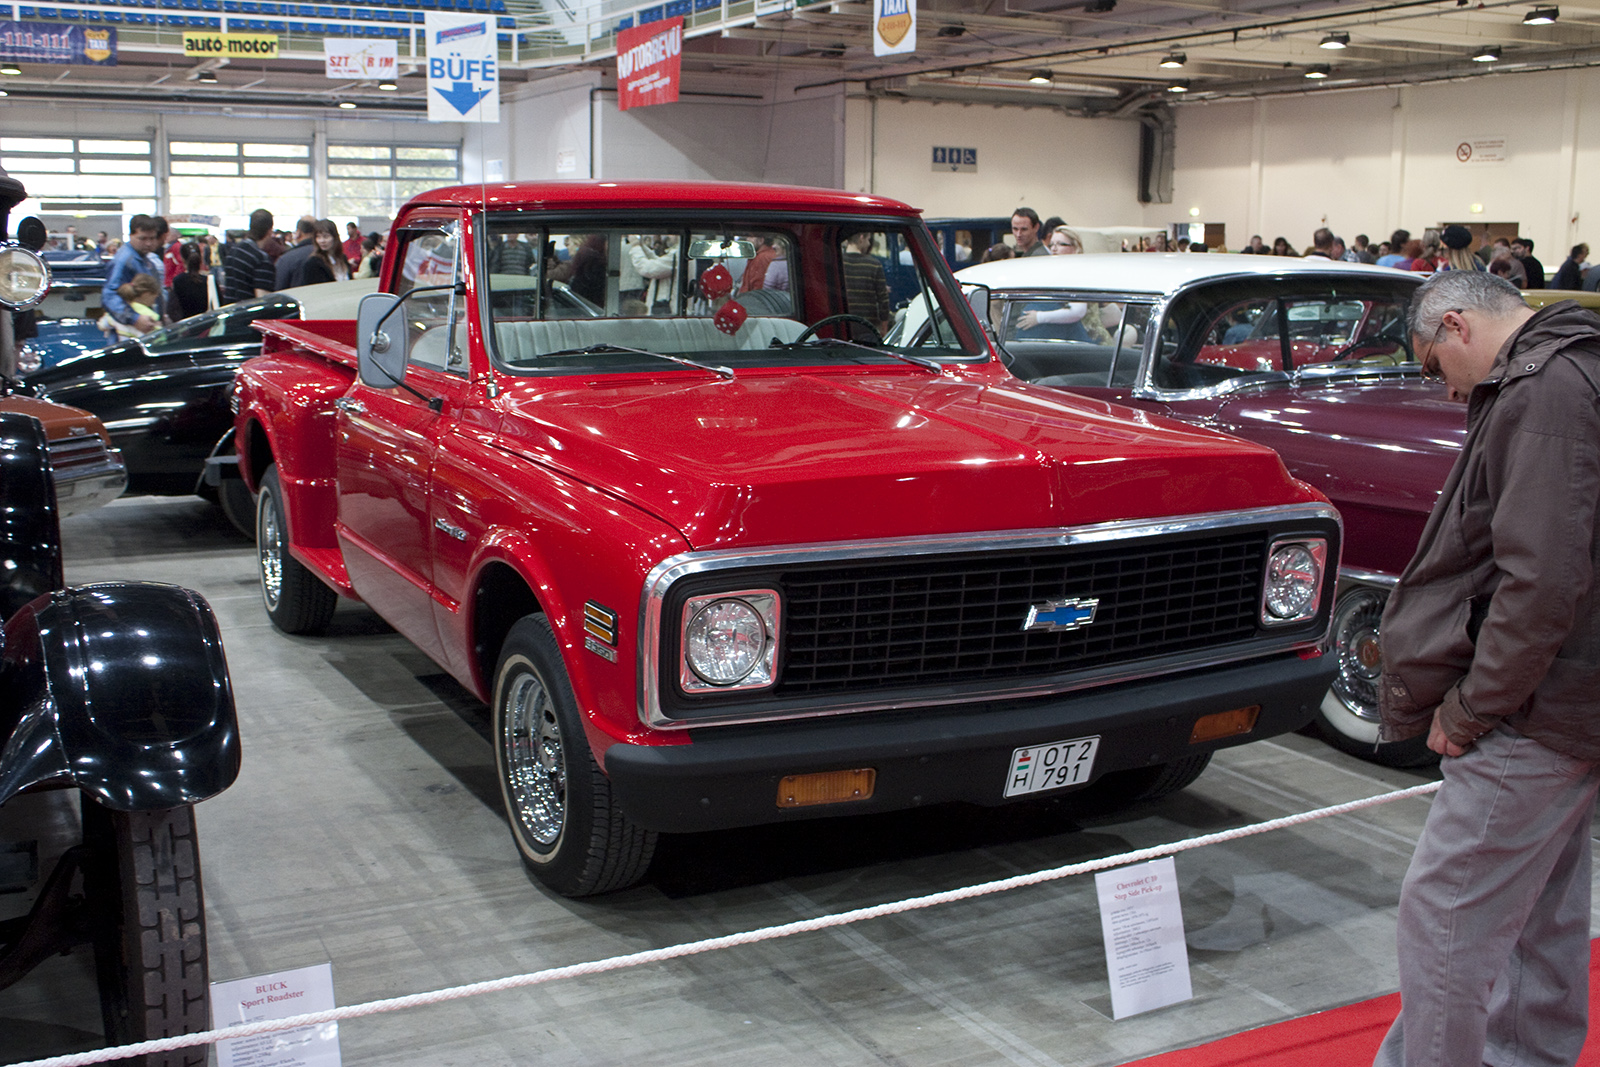 All Chevy chevy c10 wiki : File:Chevrolet C10 Step Side Pickup - Flickr - jns001.jpg ...